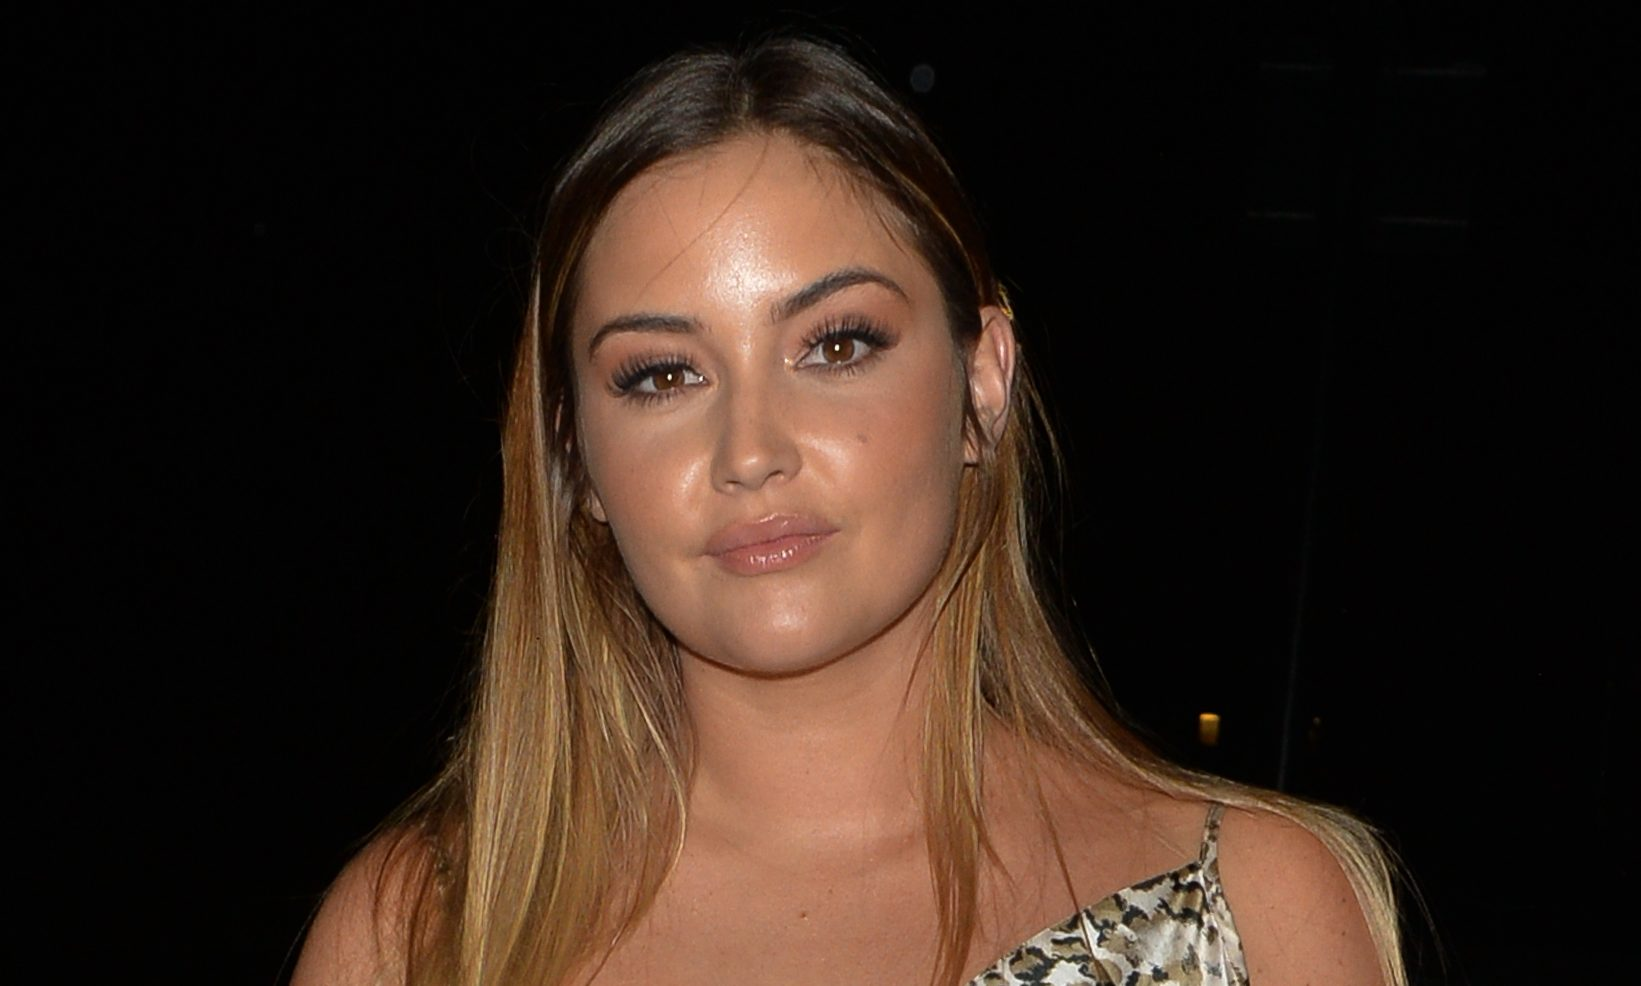 Jacqueline Jossa goes make-up free as she opens up about 'eye-opener'